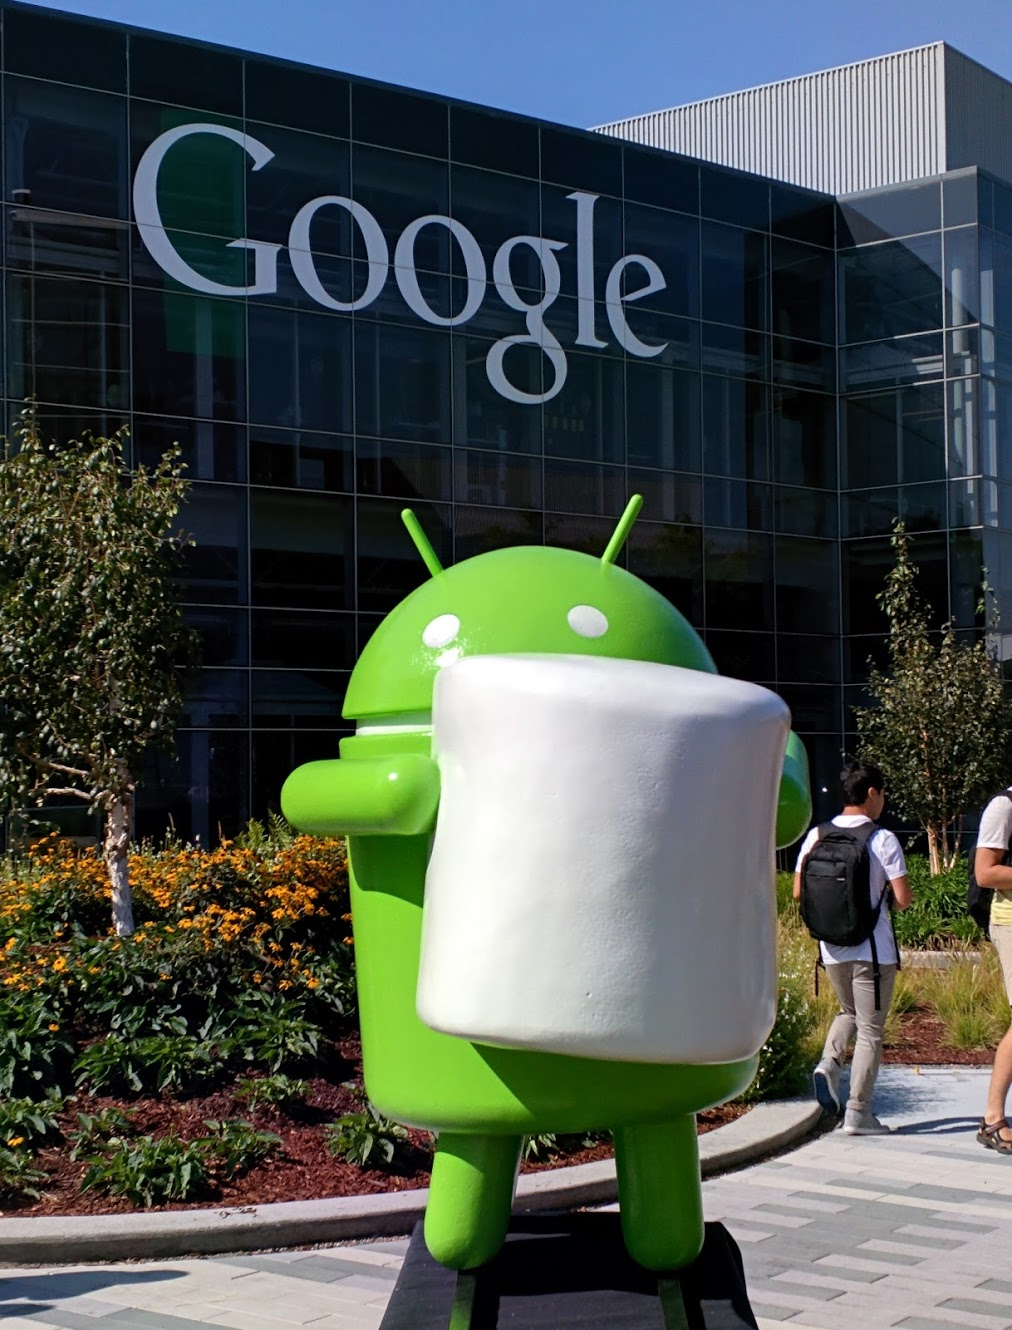 It's official: Android M is 'Marshmallow'